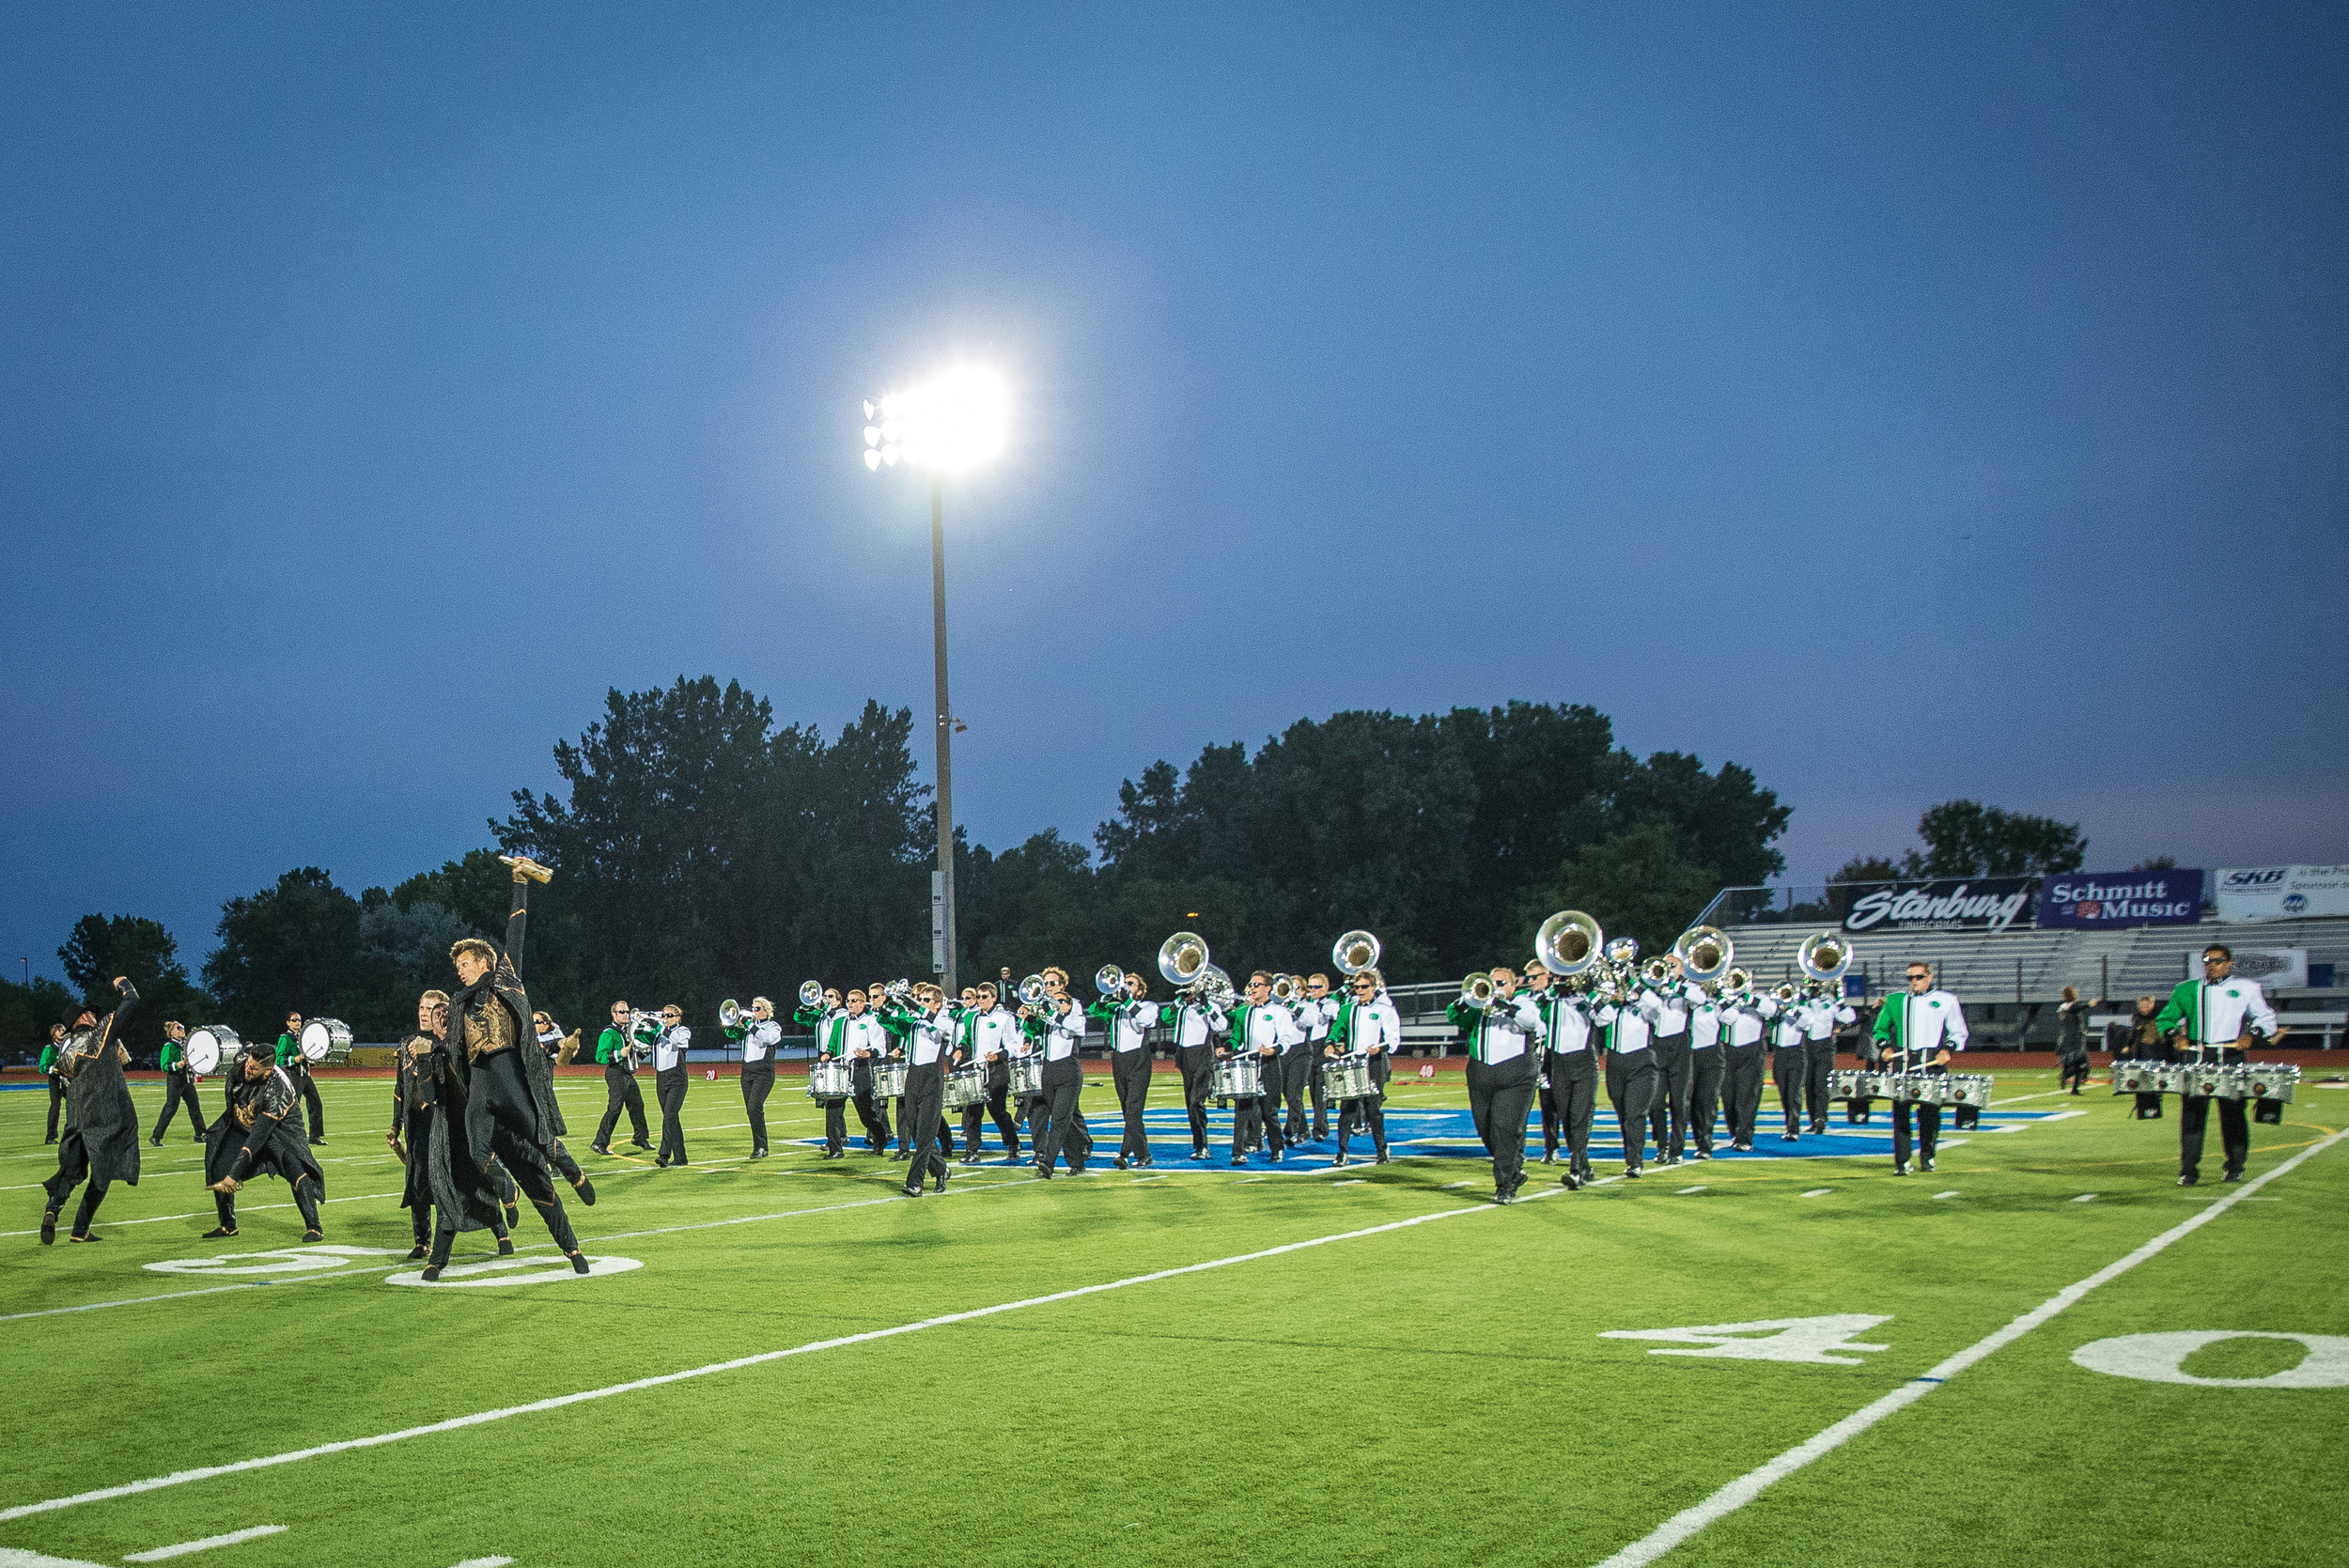 """Members of the Govenaires perform their production """"Outlaw"""" at the Sounds of Minnesota show hosted at St. Thomas Academy in August.   Photo provided by TwinCitiesMedia.net   Full Resolution"""